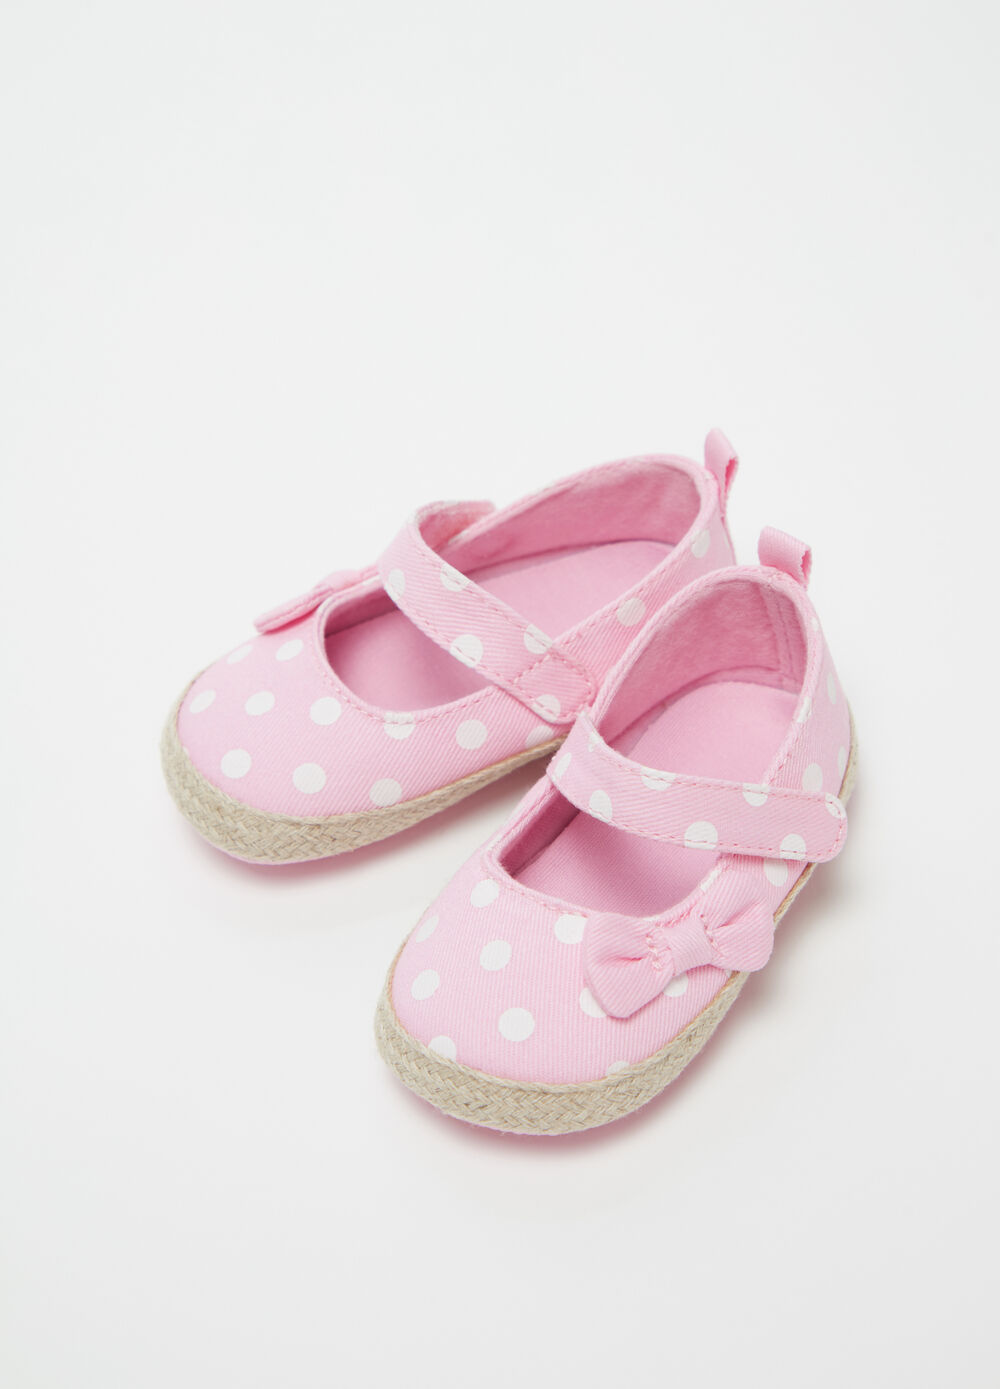 Baby shoes with polka dot bow